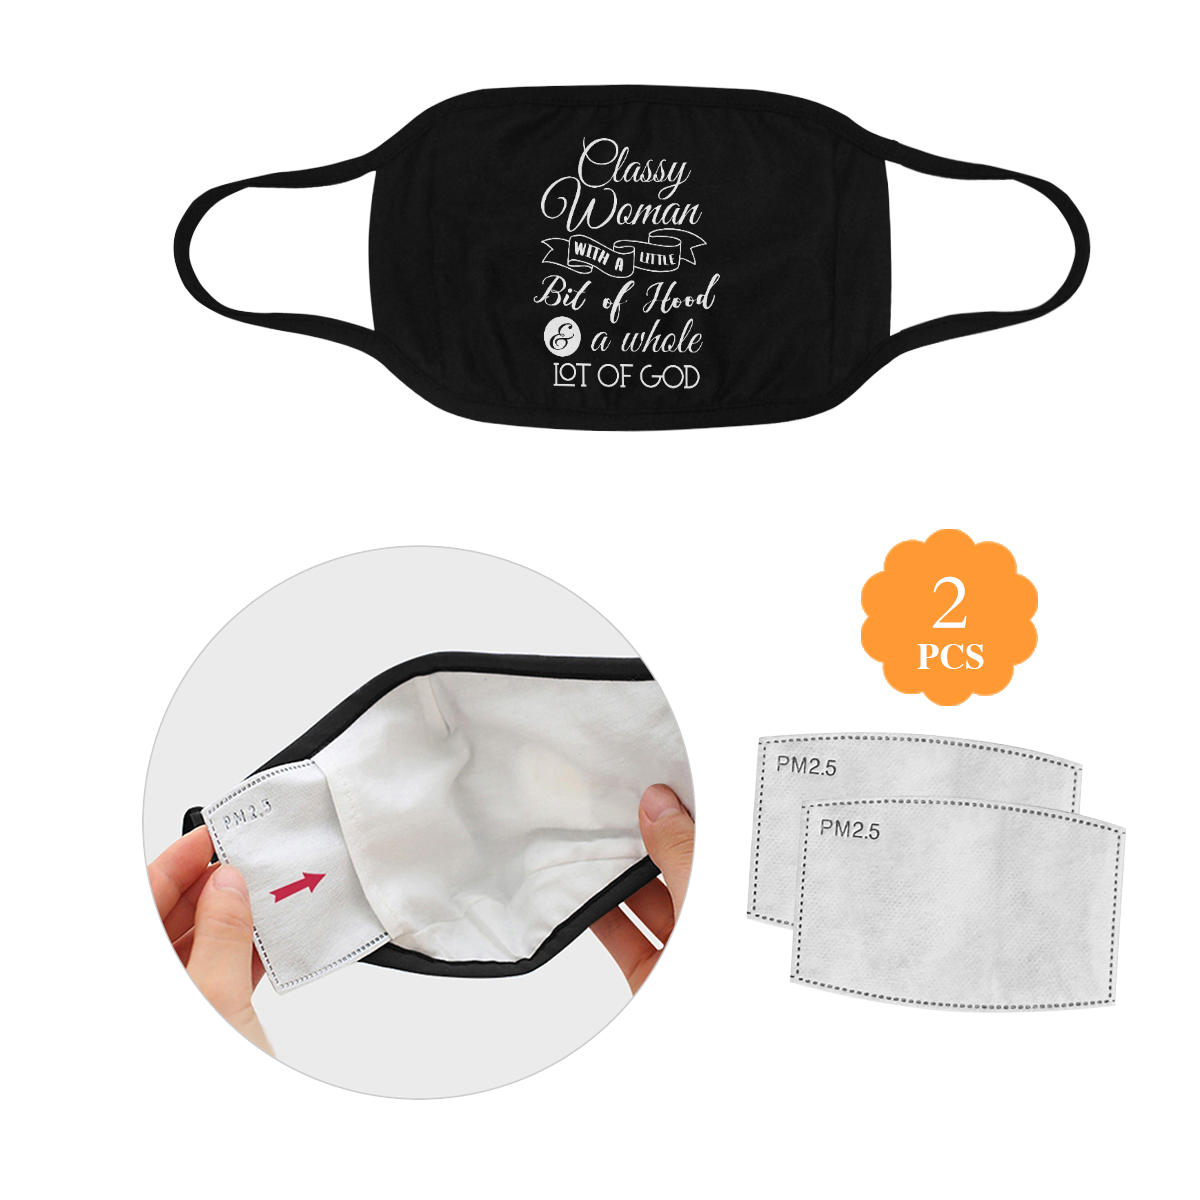 Classy Woman Whole Lot Of God Washable Reusable Face Mask With Filter Pocket